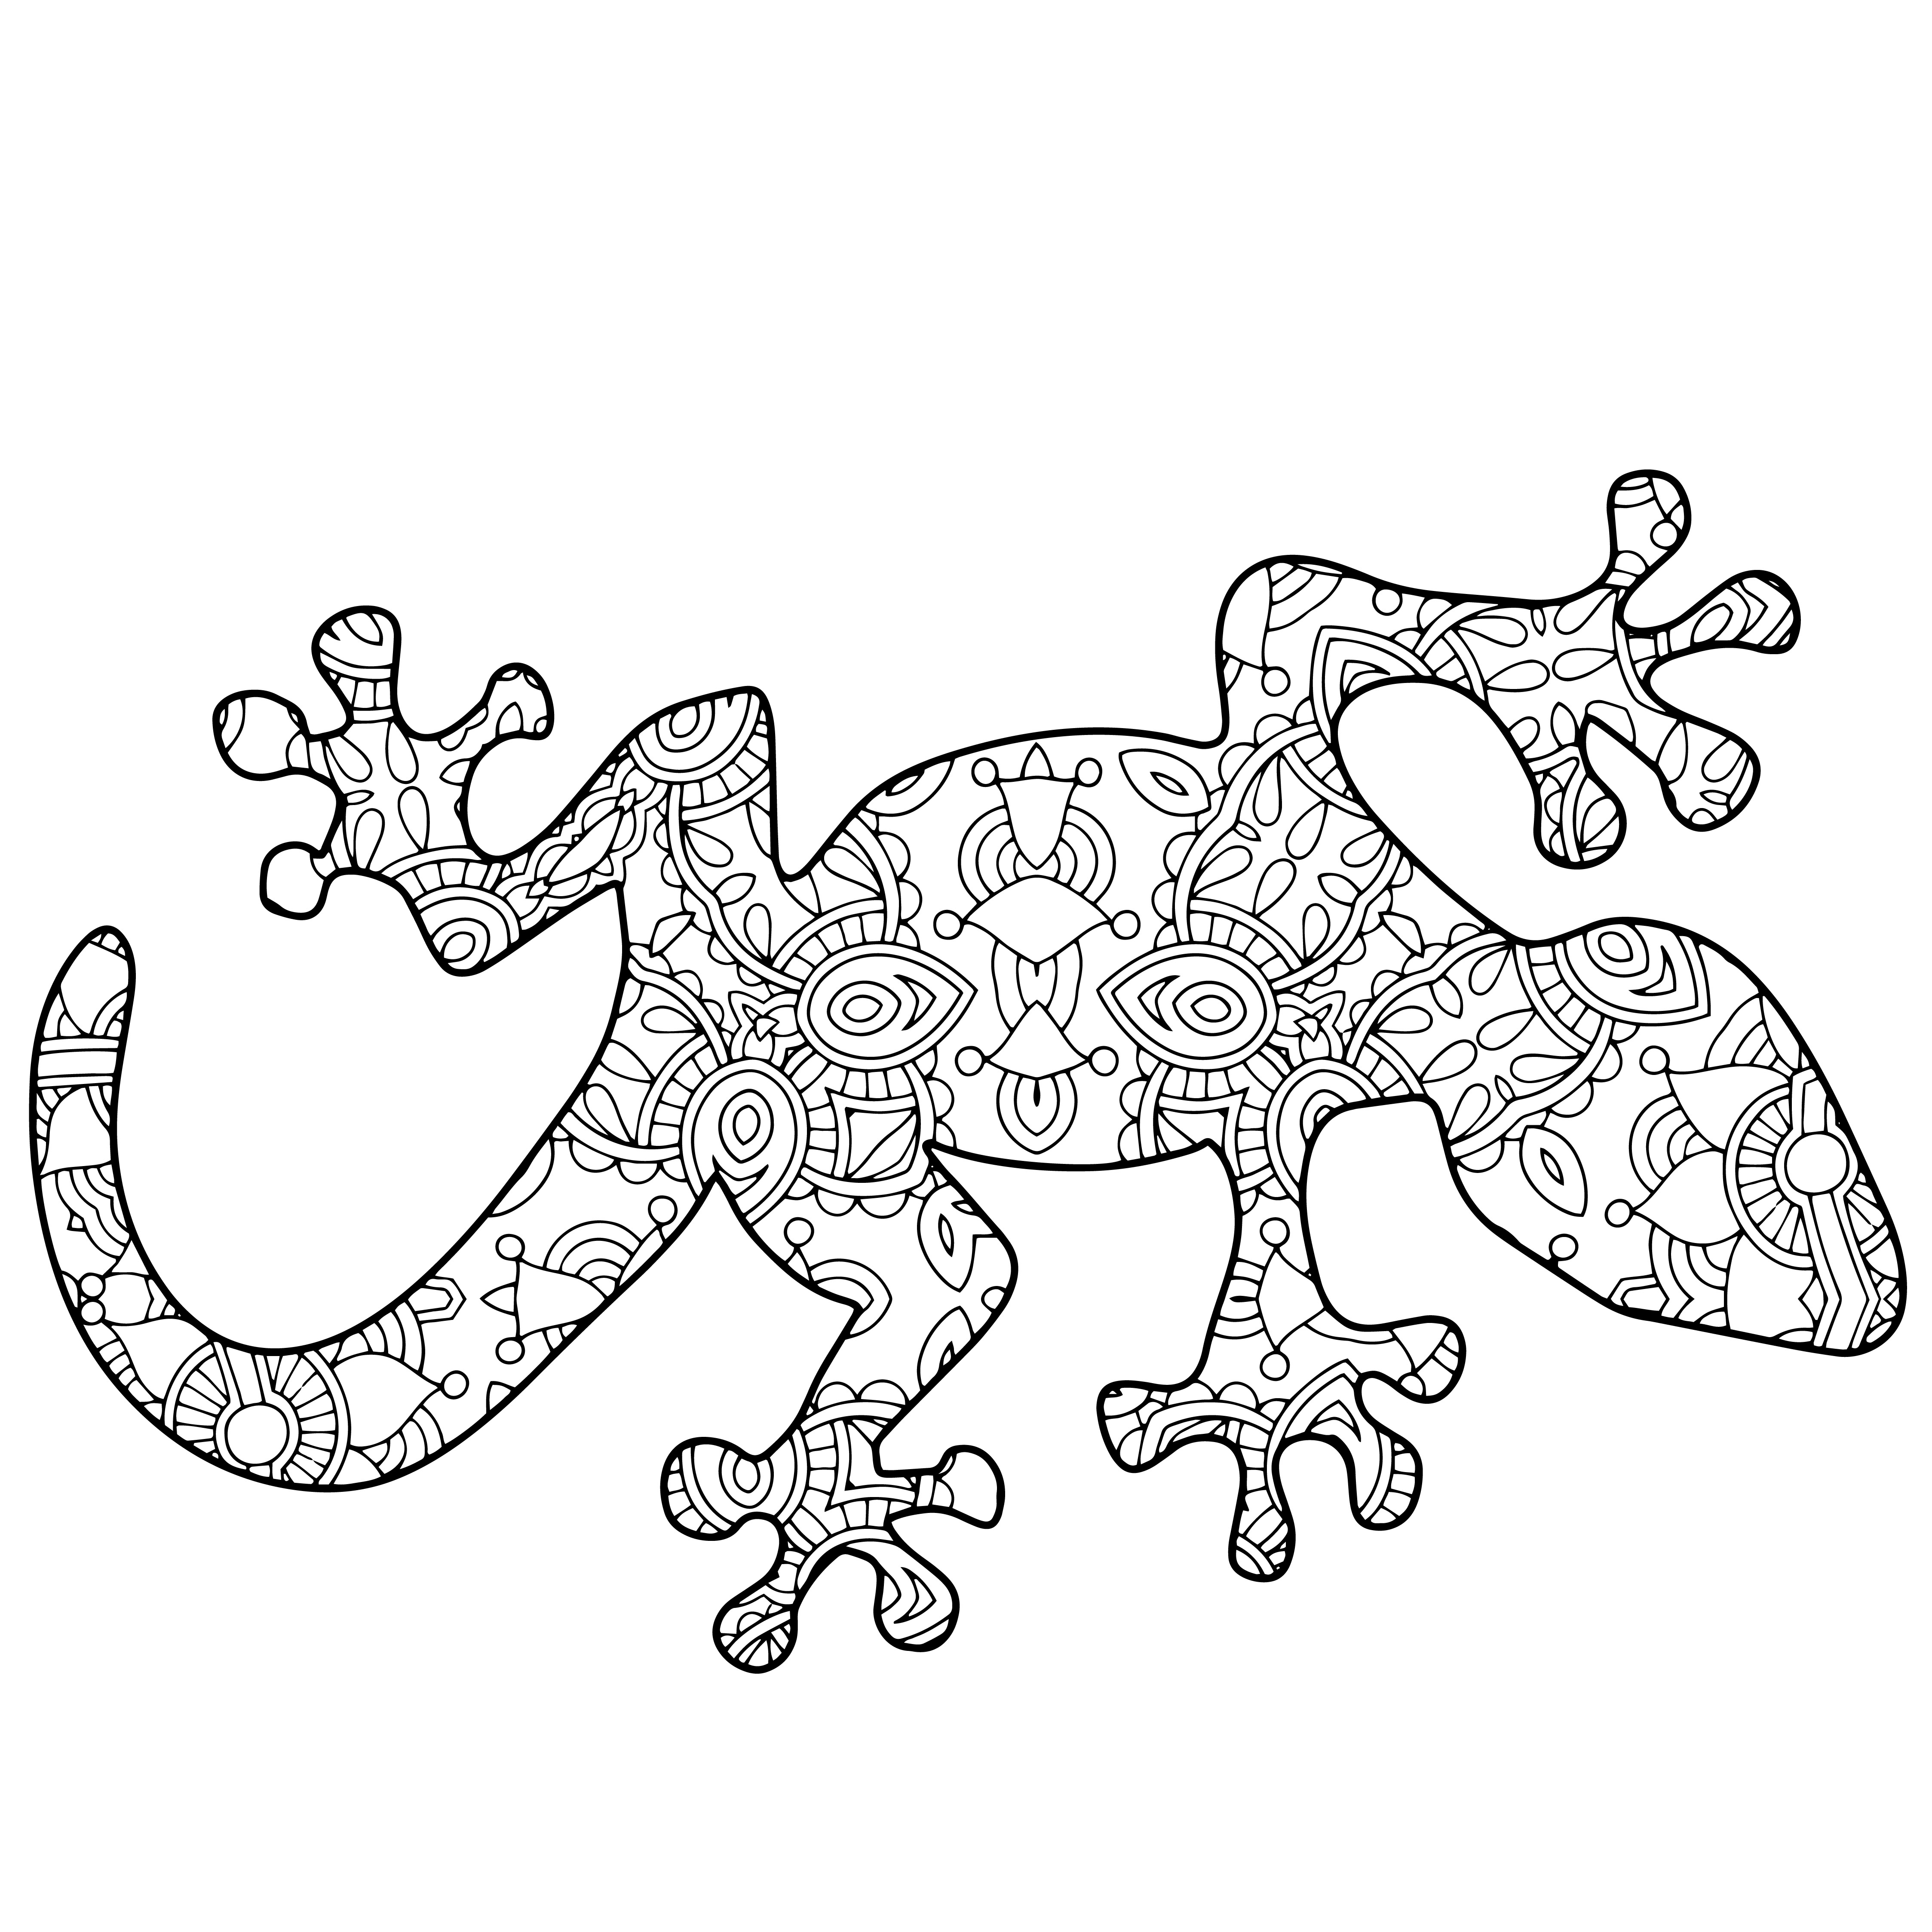 relaxation animal coloring pages coloring to calm volume three animals animal coloring relaxation pages